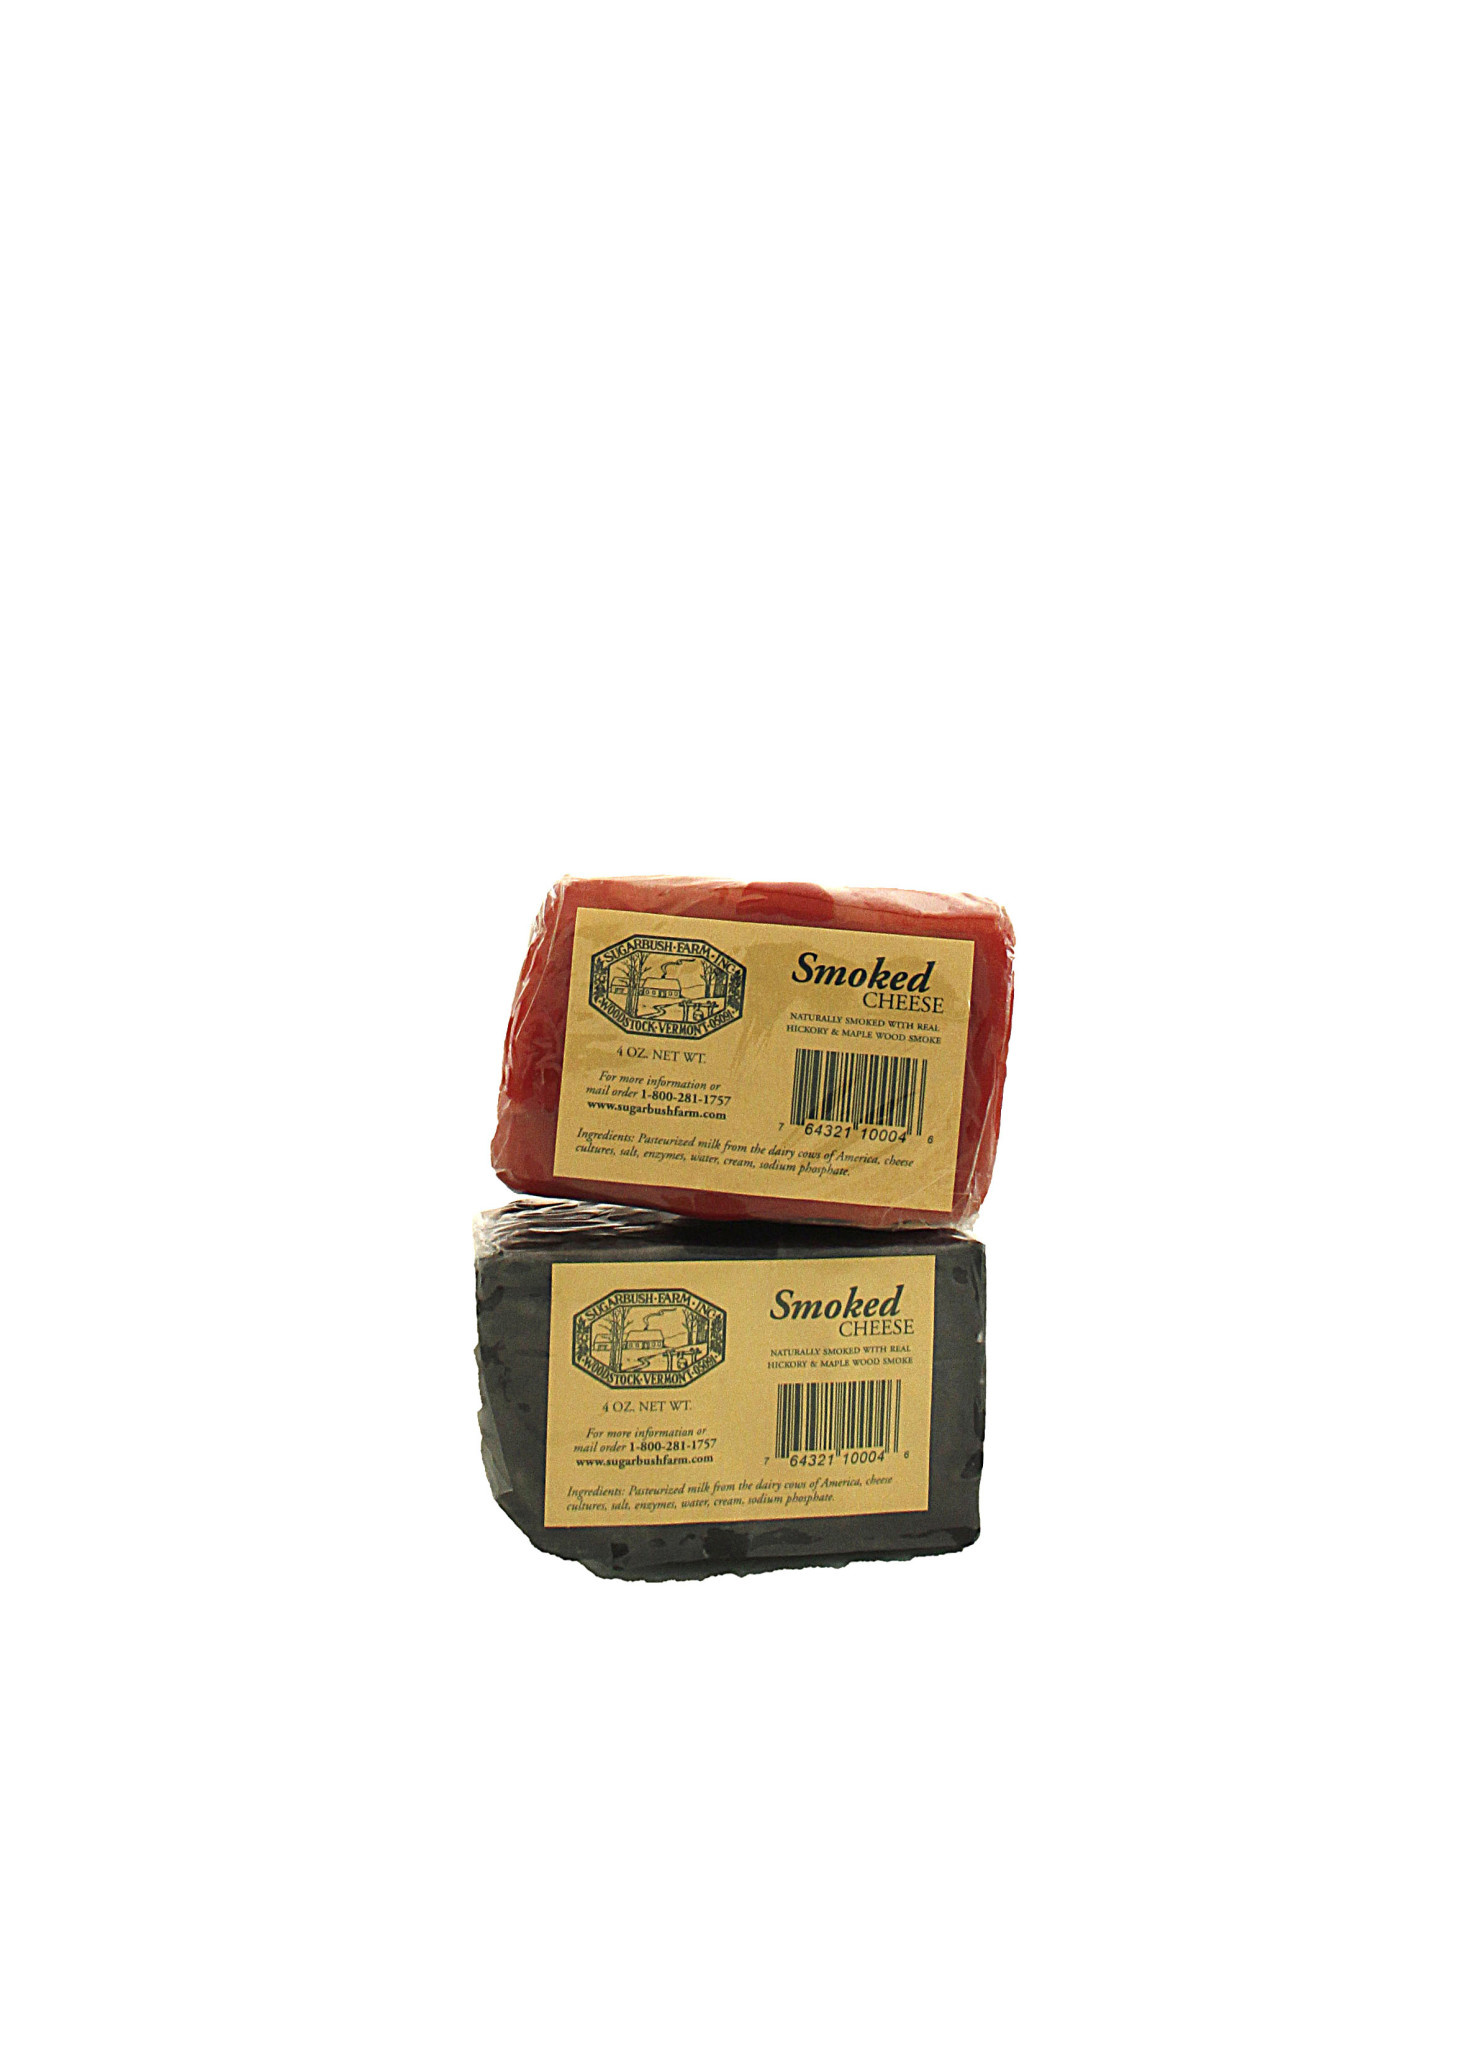 Sugarbush Farm Smoked Cheese, 4 ounce